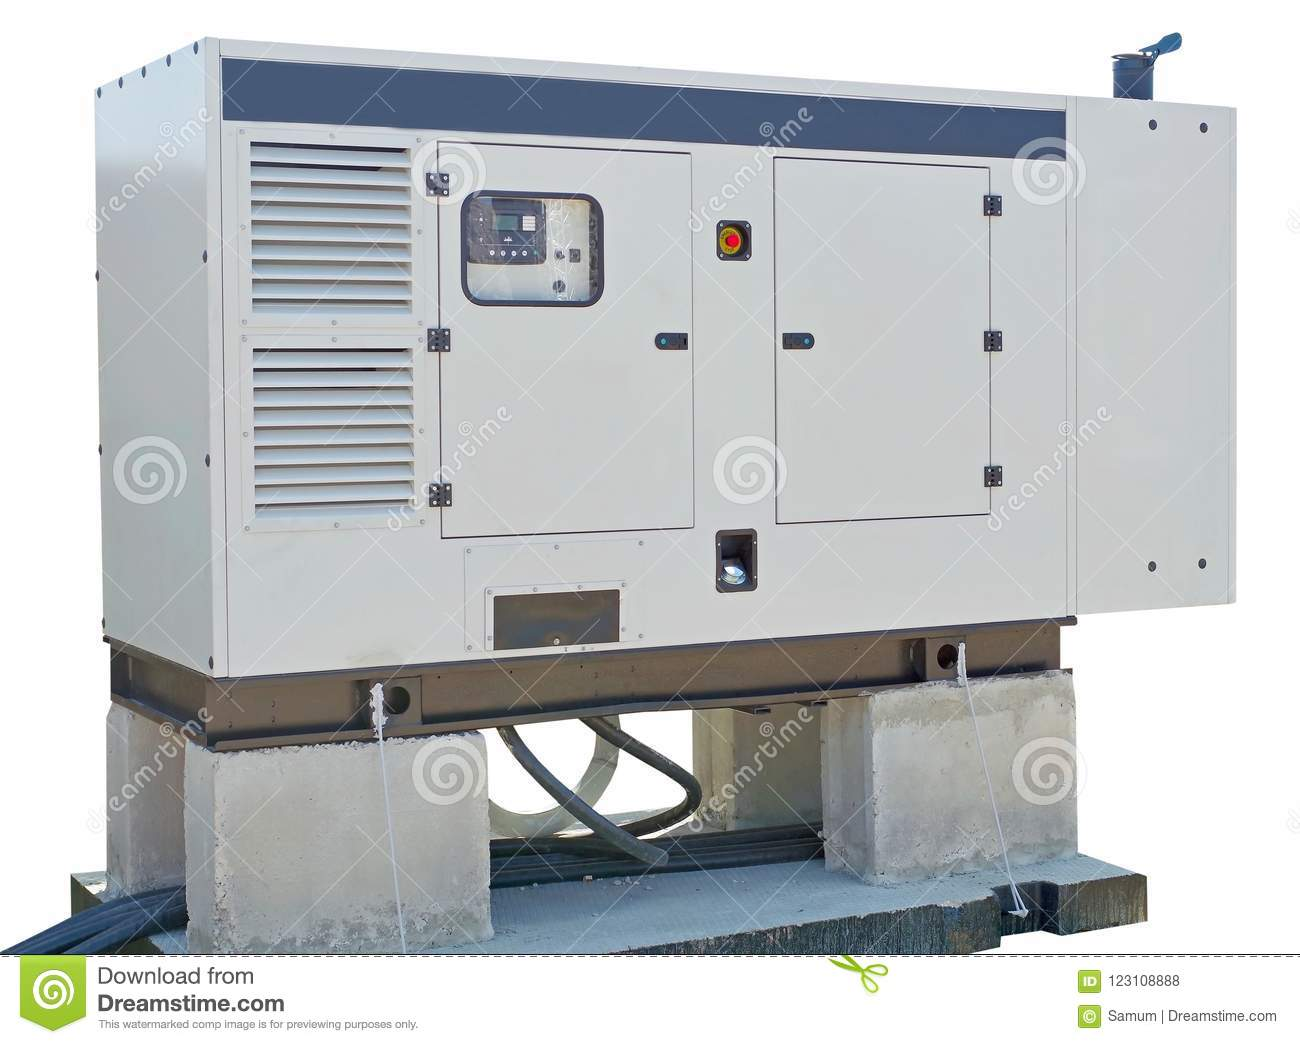 Electrical Power Generator For Download Emergency Electric Power Generator Box Stock Photo Image Of Mobile Electric 123108888 Mobile